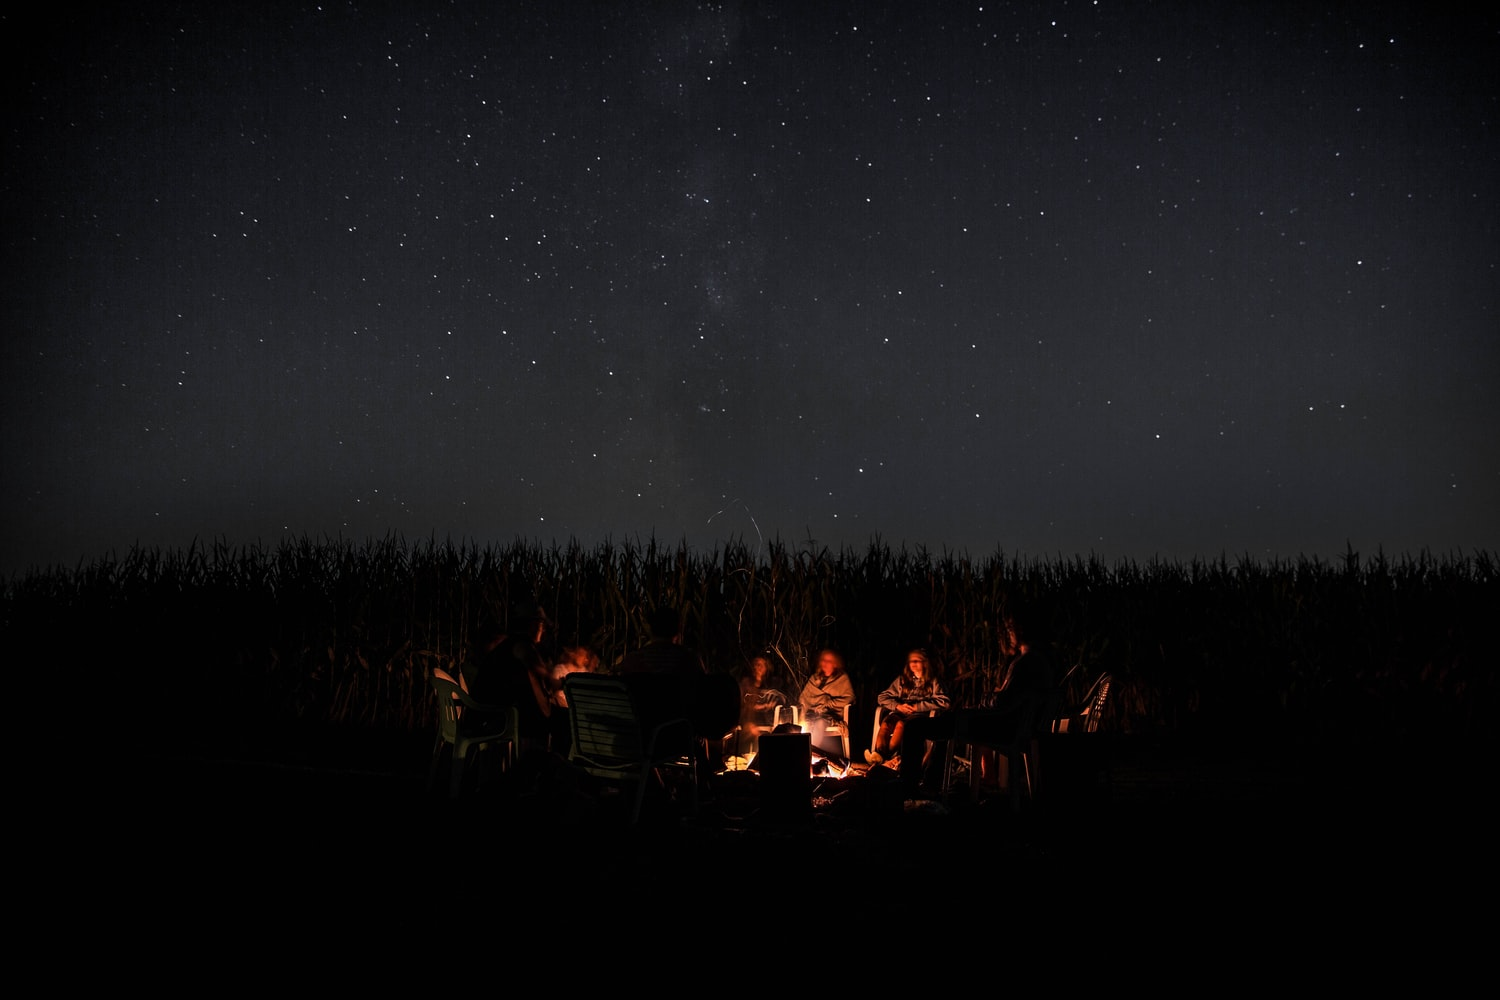 Group of people is having a campfire underneath the beautiful stars